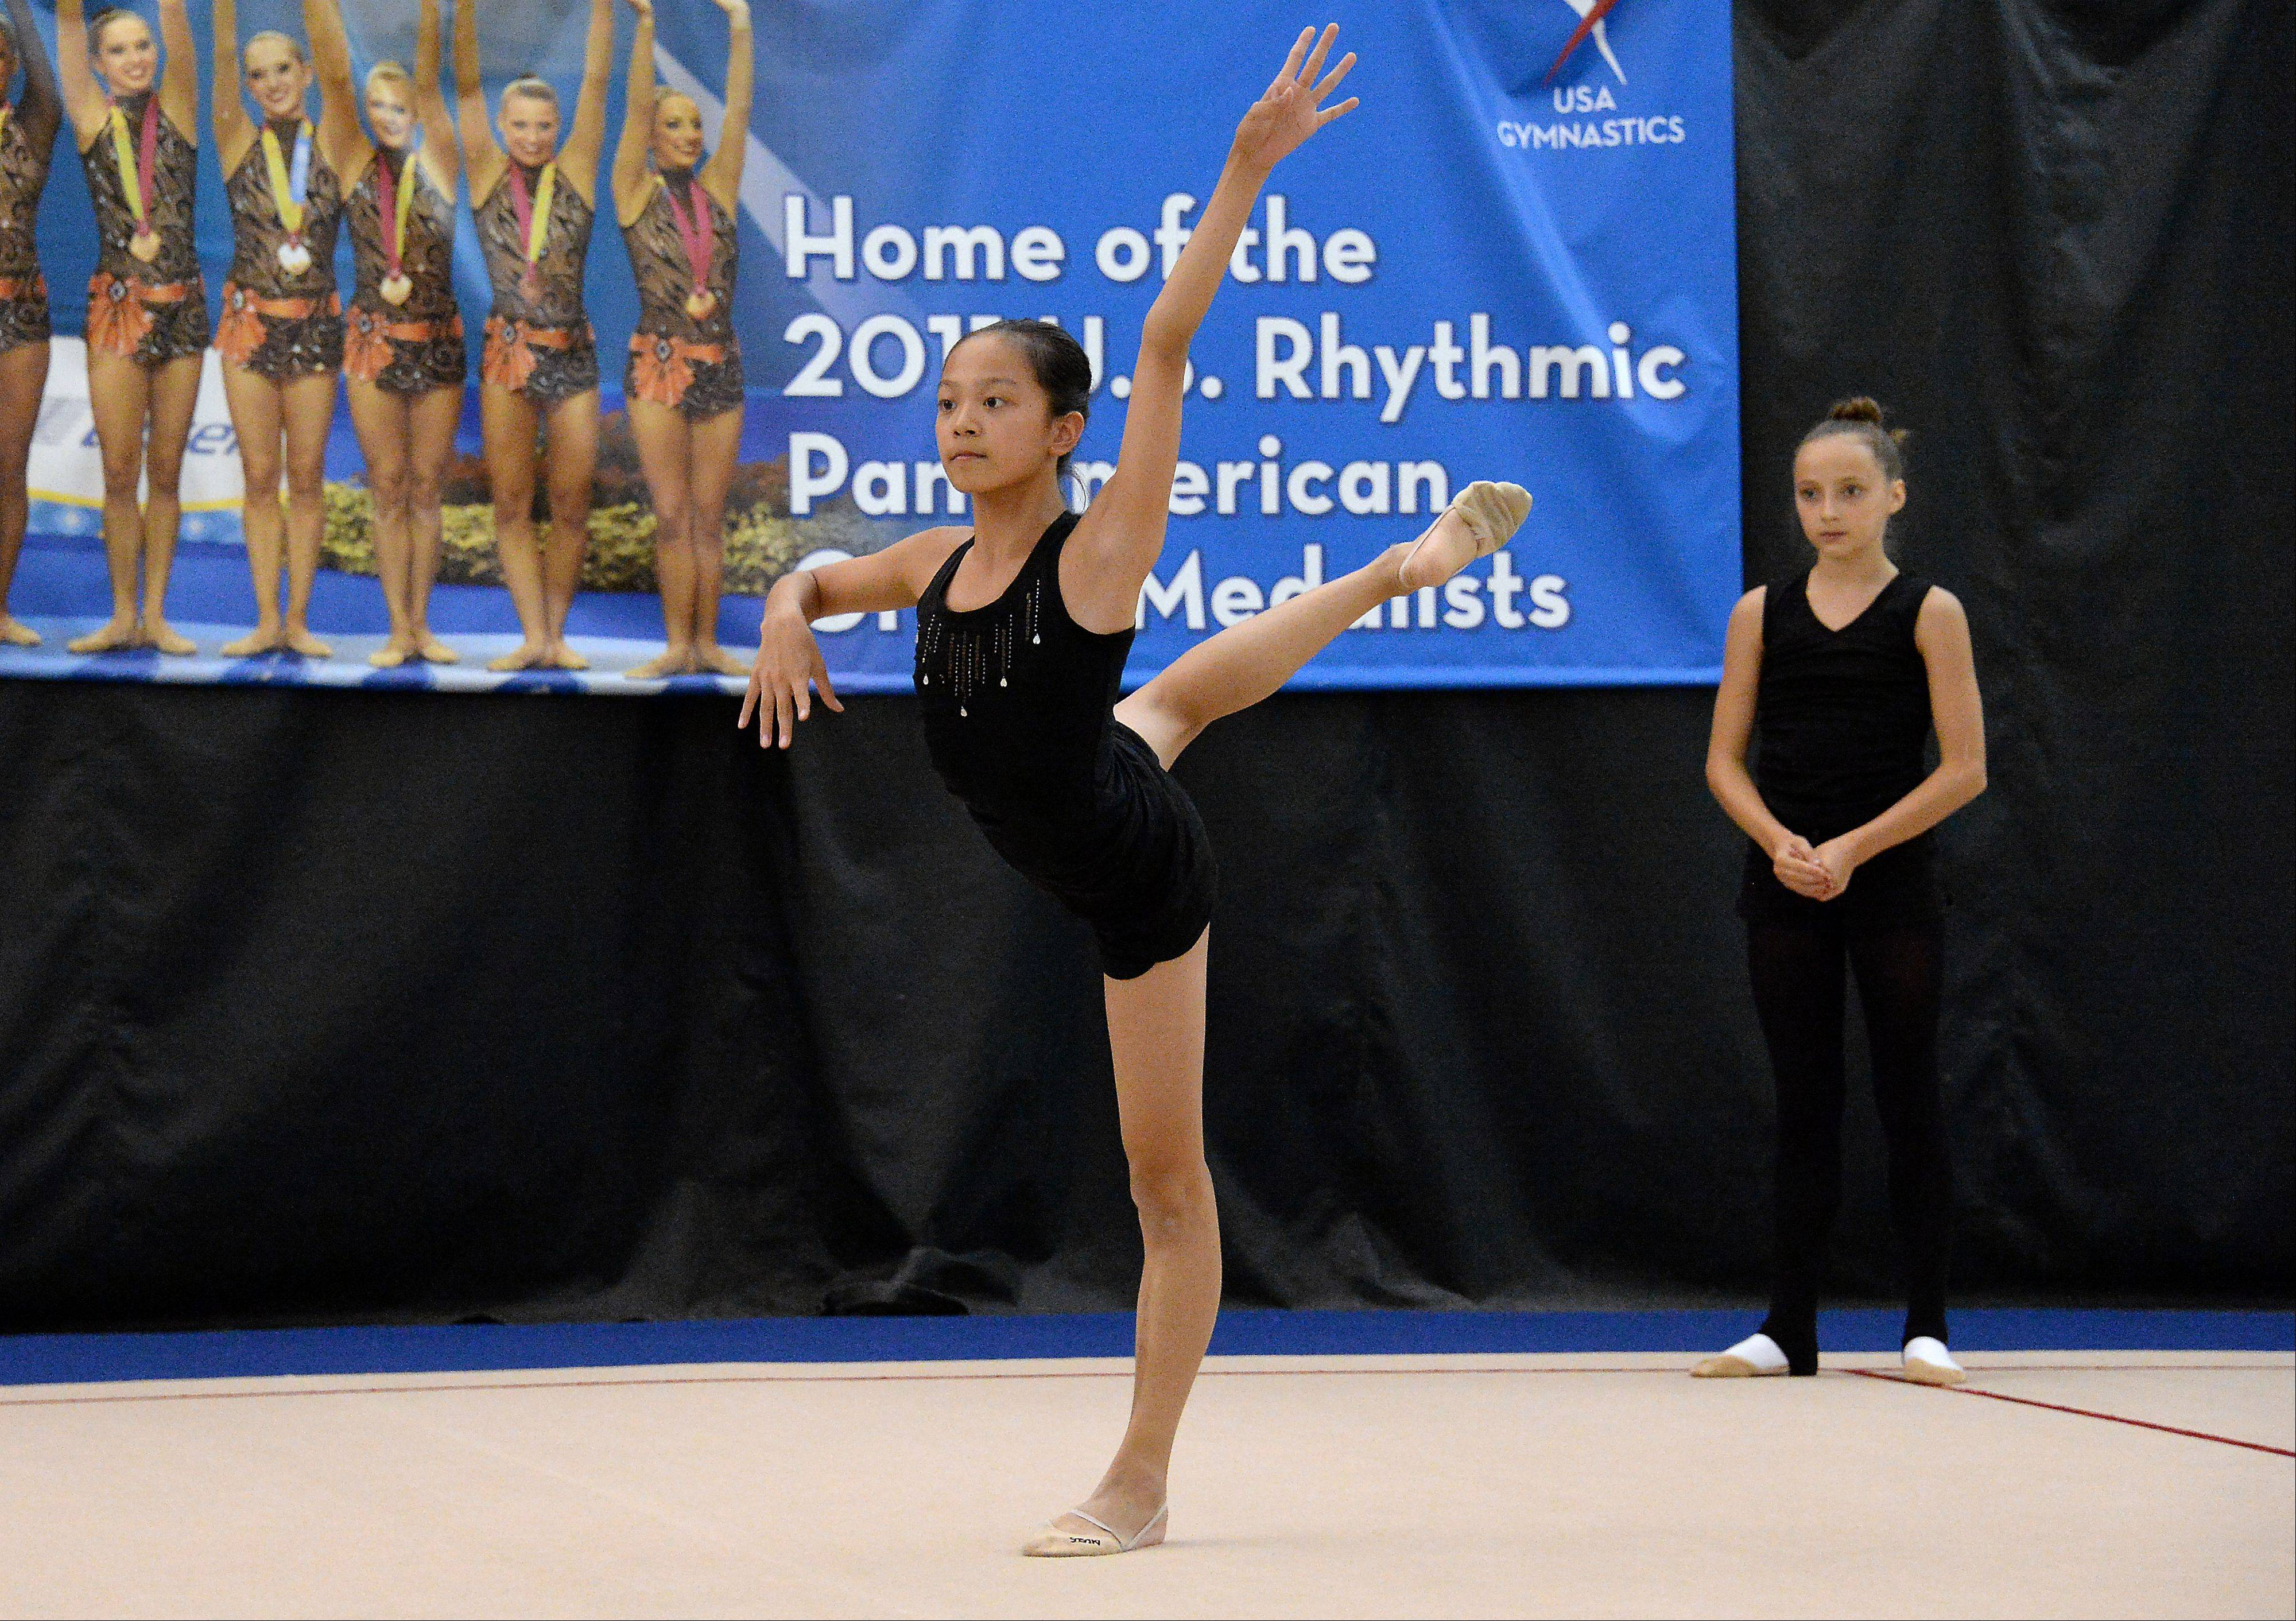 Laura Zeng, 13, of Libertyville practices a routine at the North Shore Rhythmic Gymnastic Center in Deerfield as Camilla Feeley, 13, of Lincolnshire looks on. Both are members of the junior national team and Laura is the reigning national junior champion.